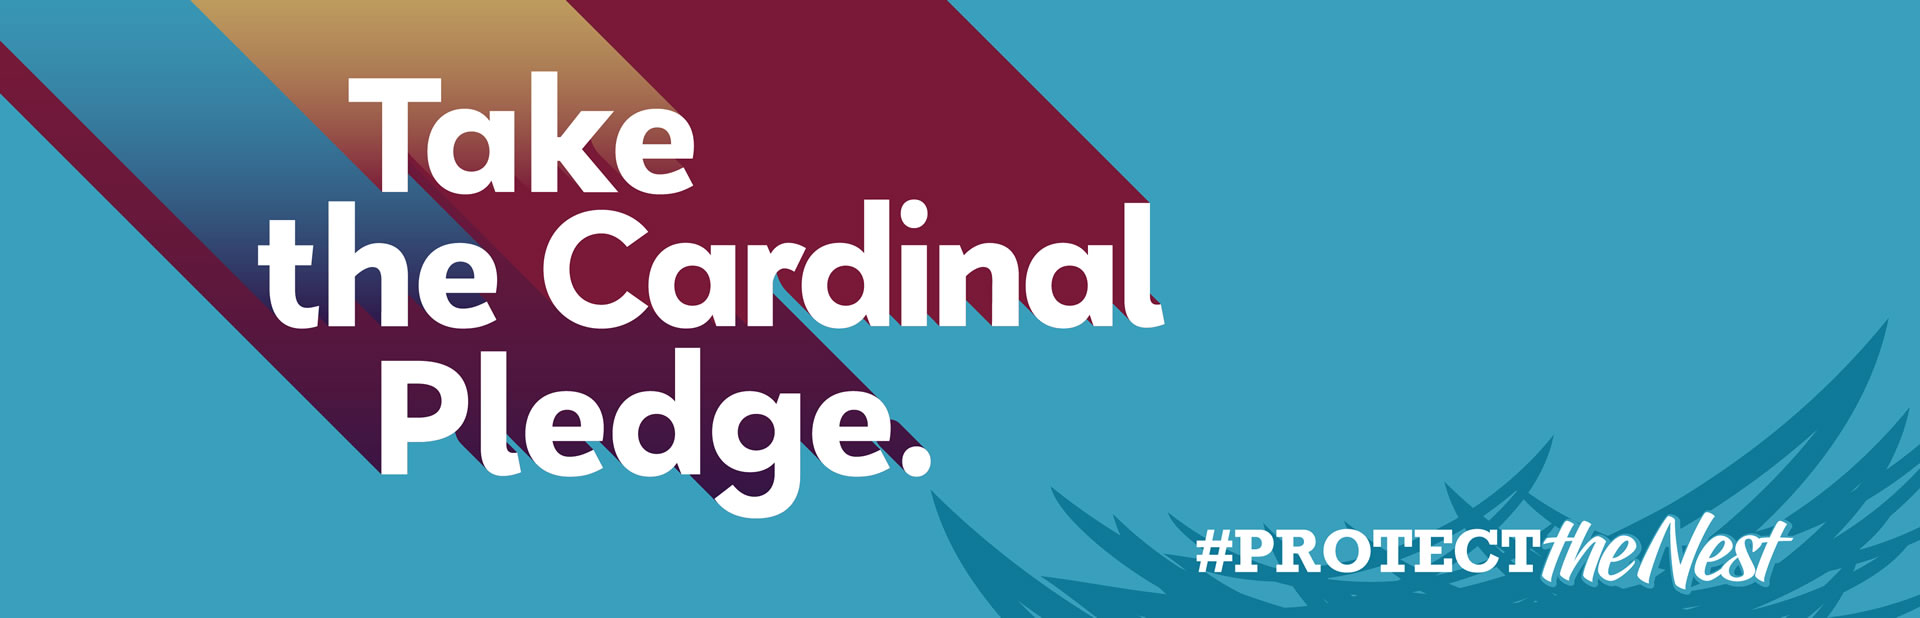 Take the Cardinal Pledge #ProtectTheNest